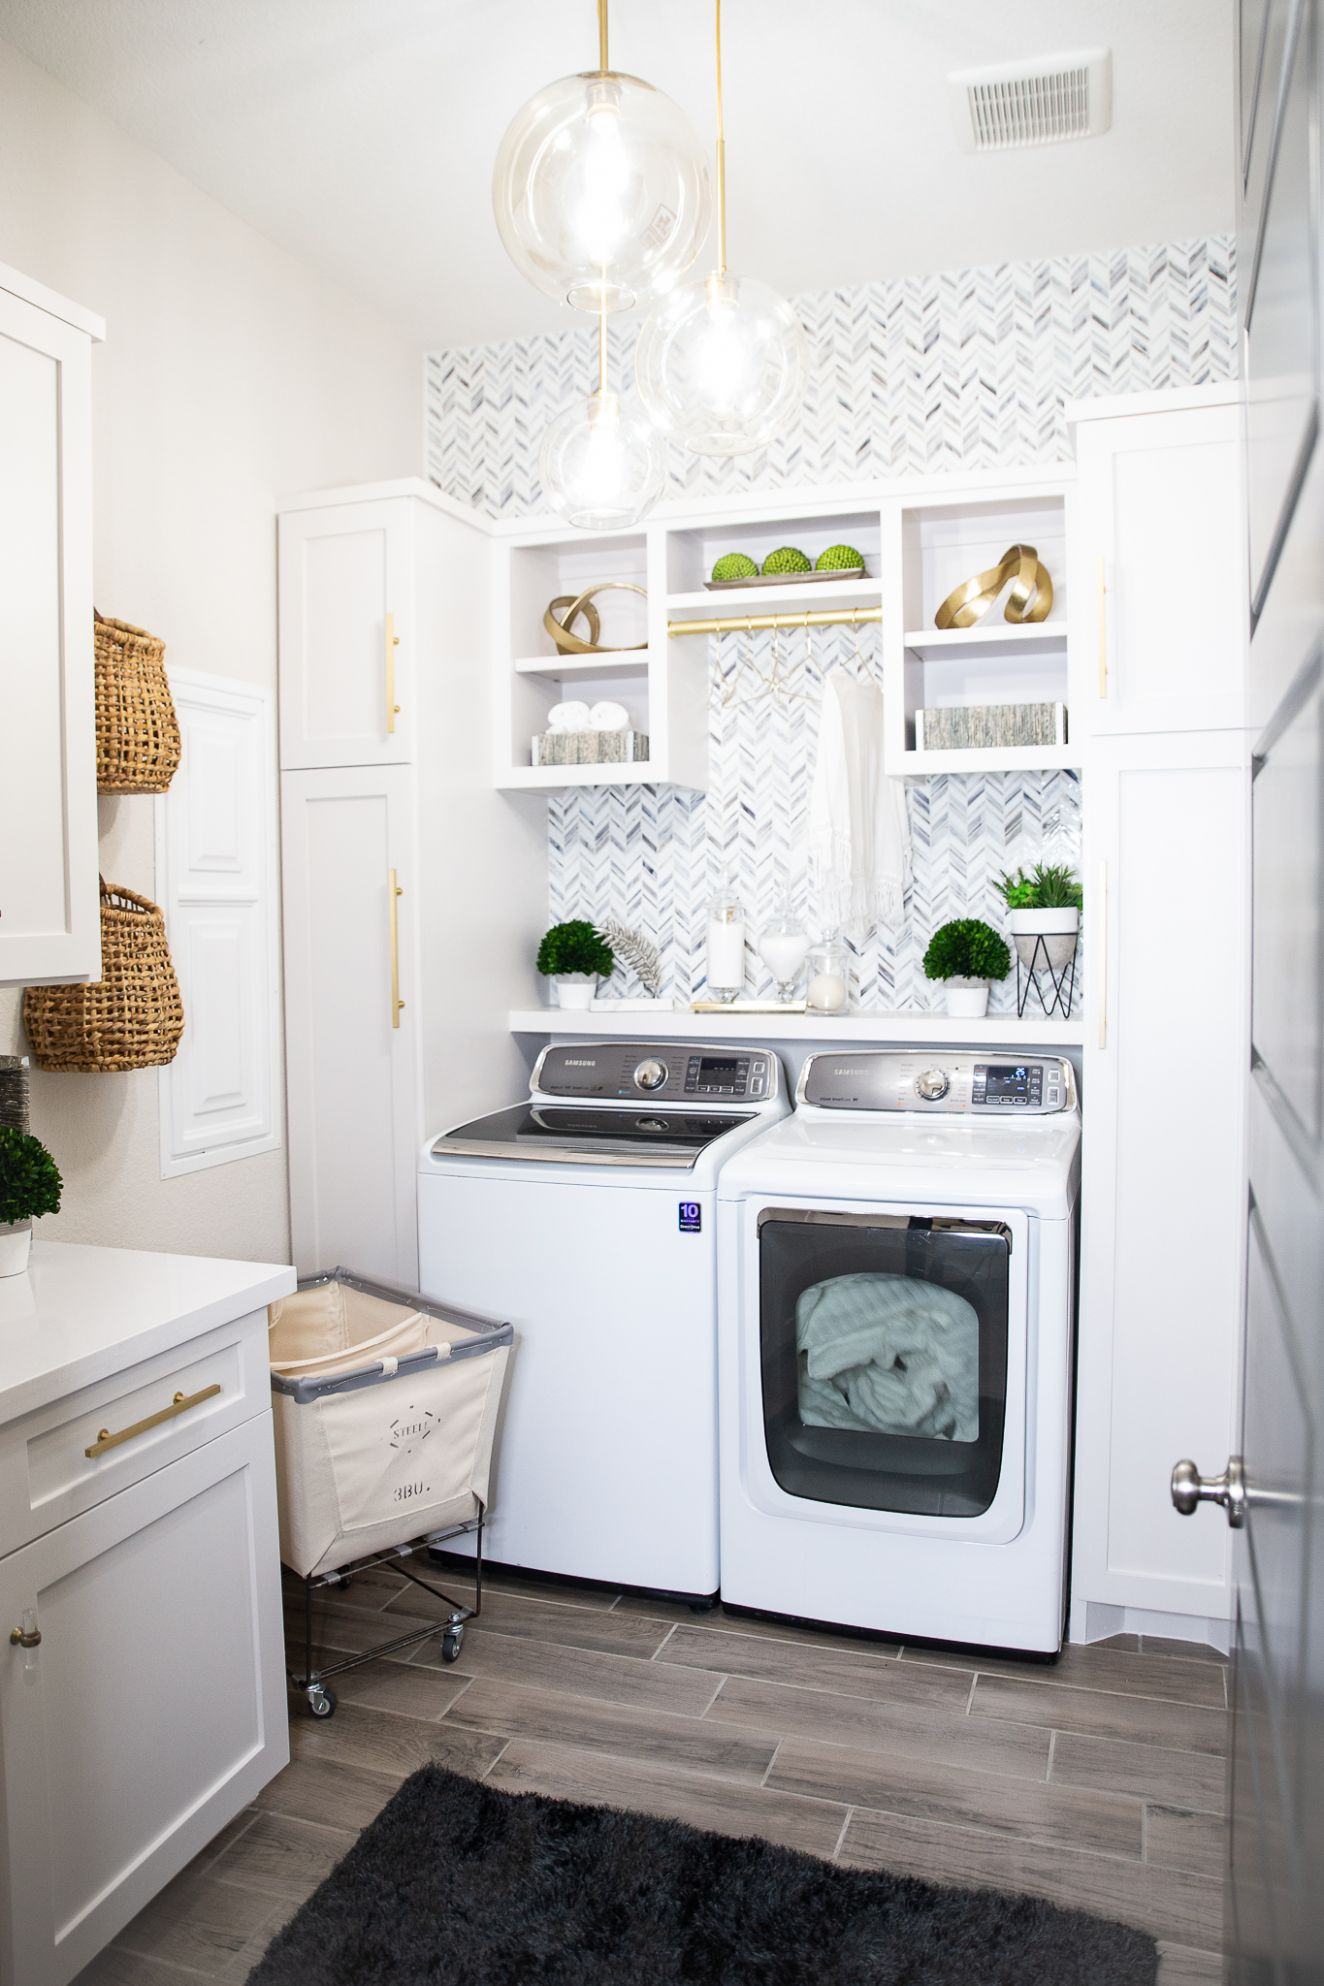 Laundry Room Makeover: Built-In Top Loader Washer and Dryer ..